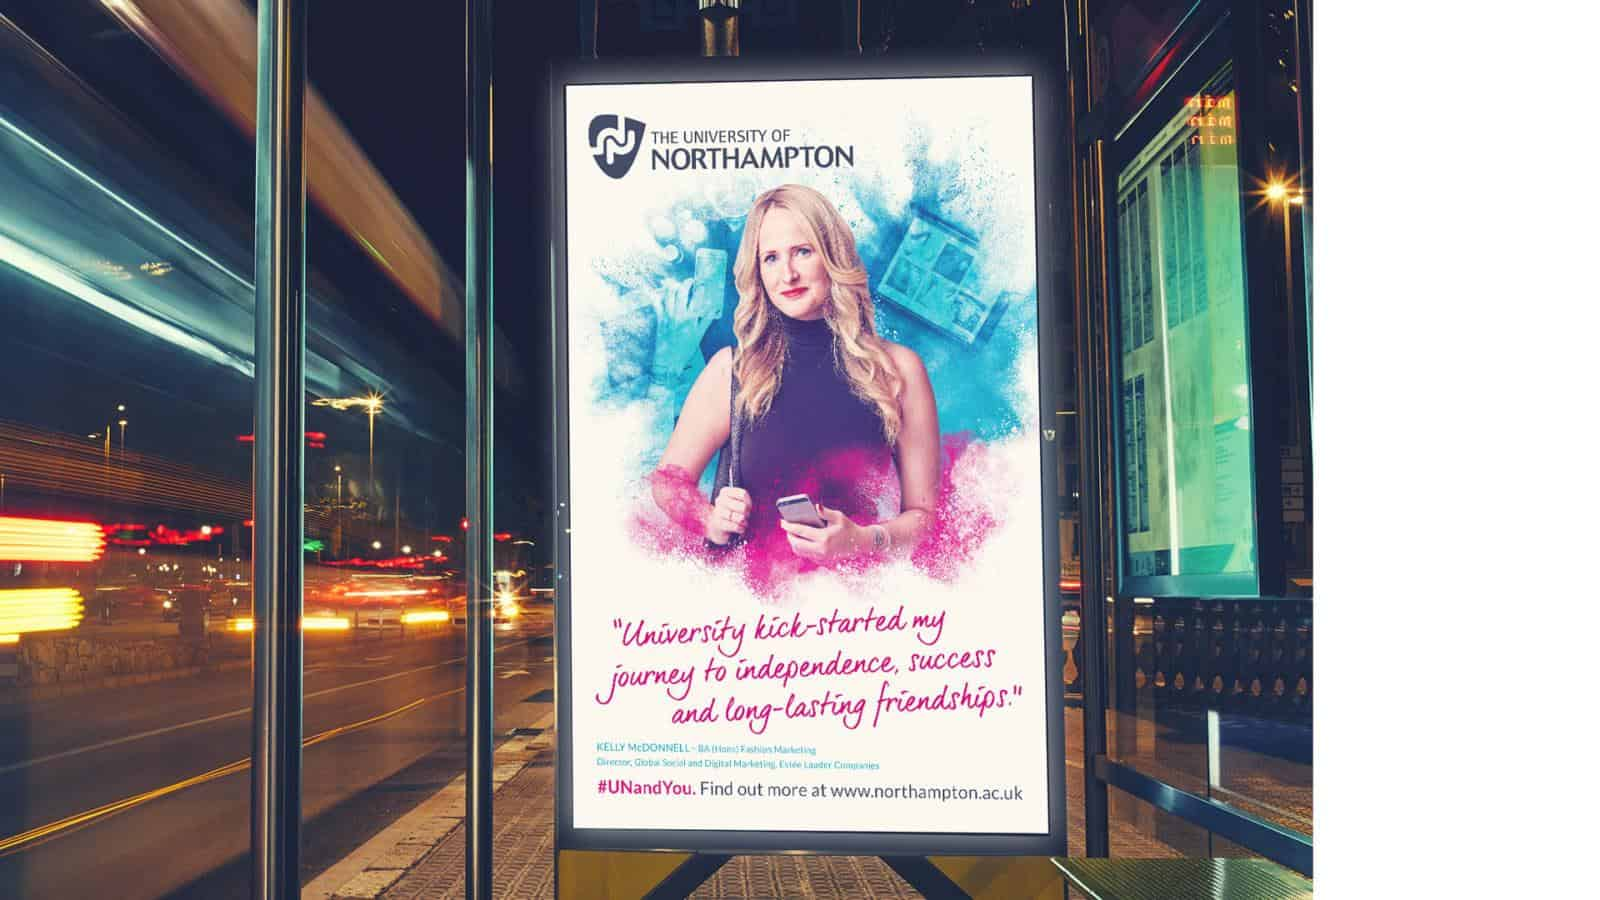 University of Northampton outdoor advertising